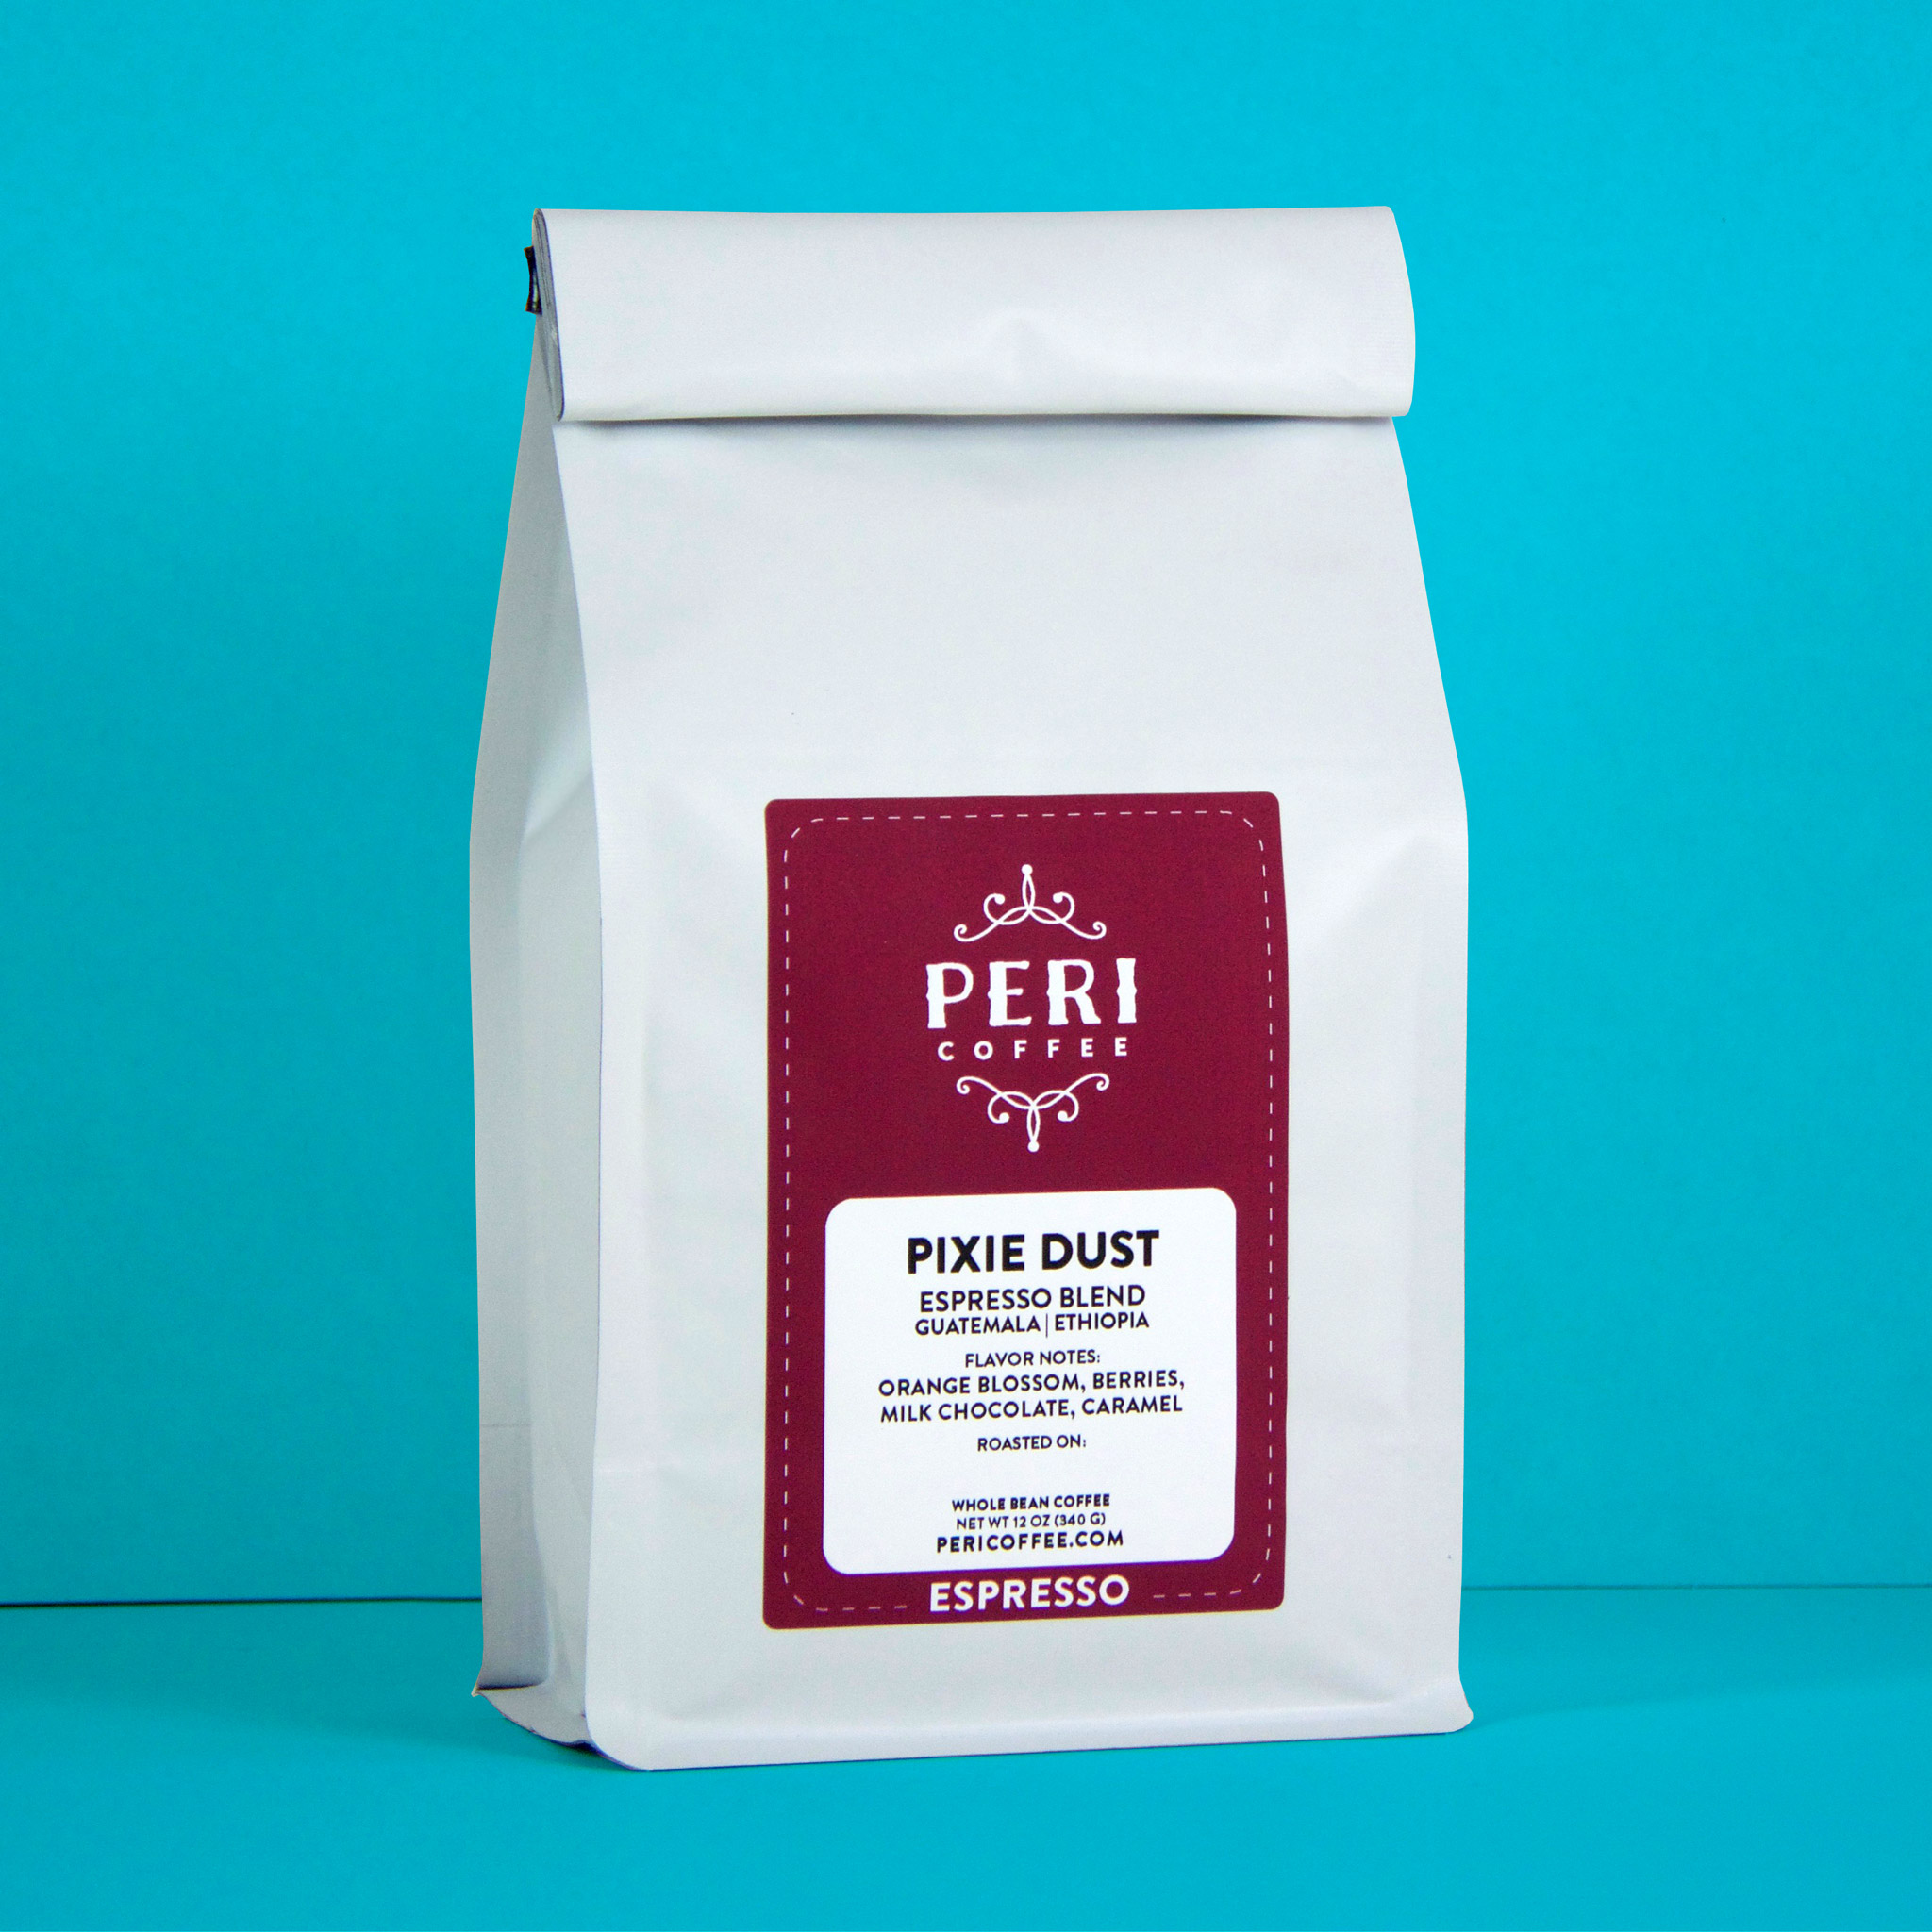 White bag of coffee with a maroon label in front of aqua blue background.